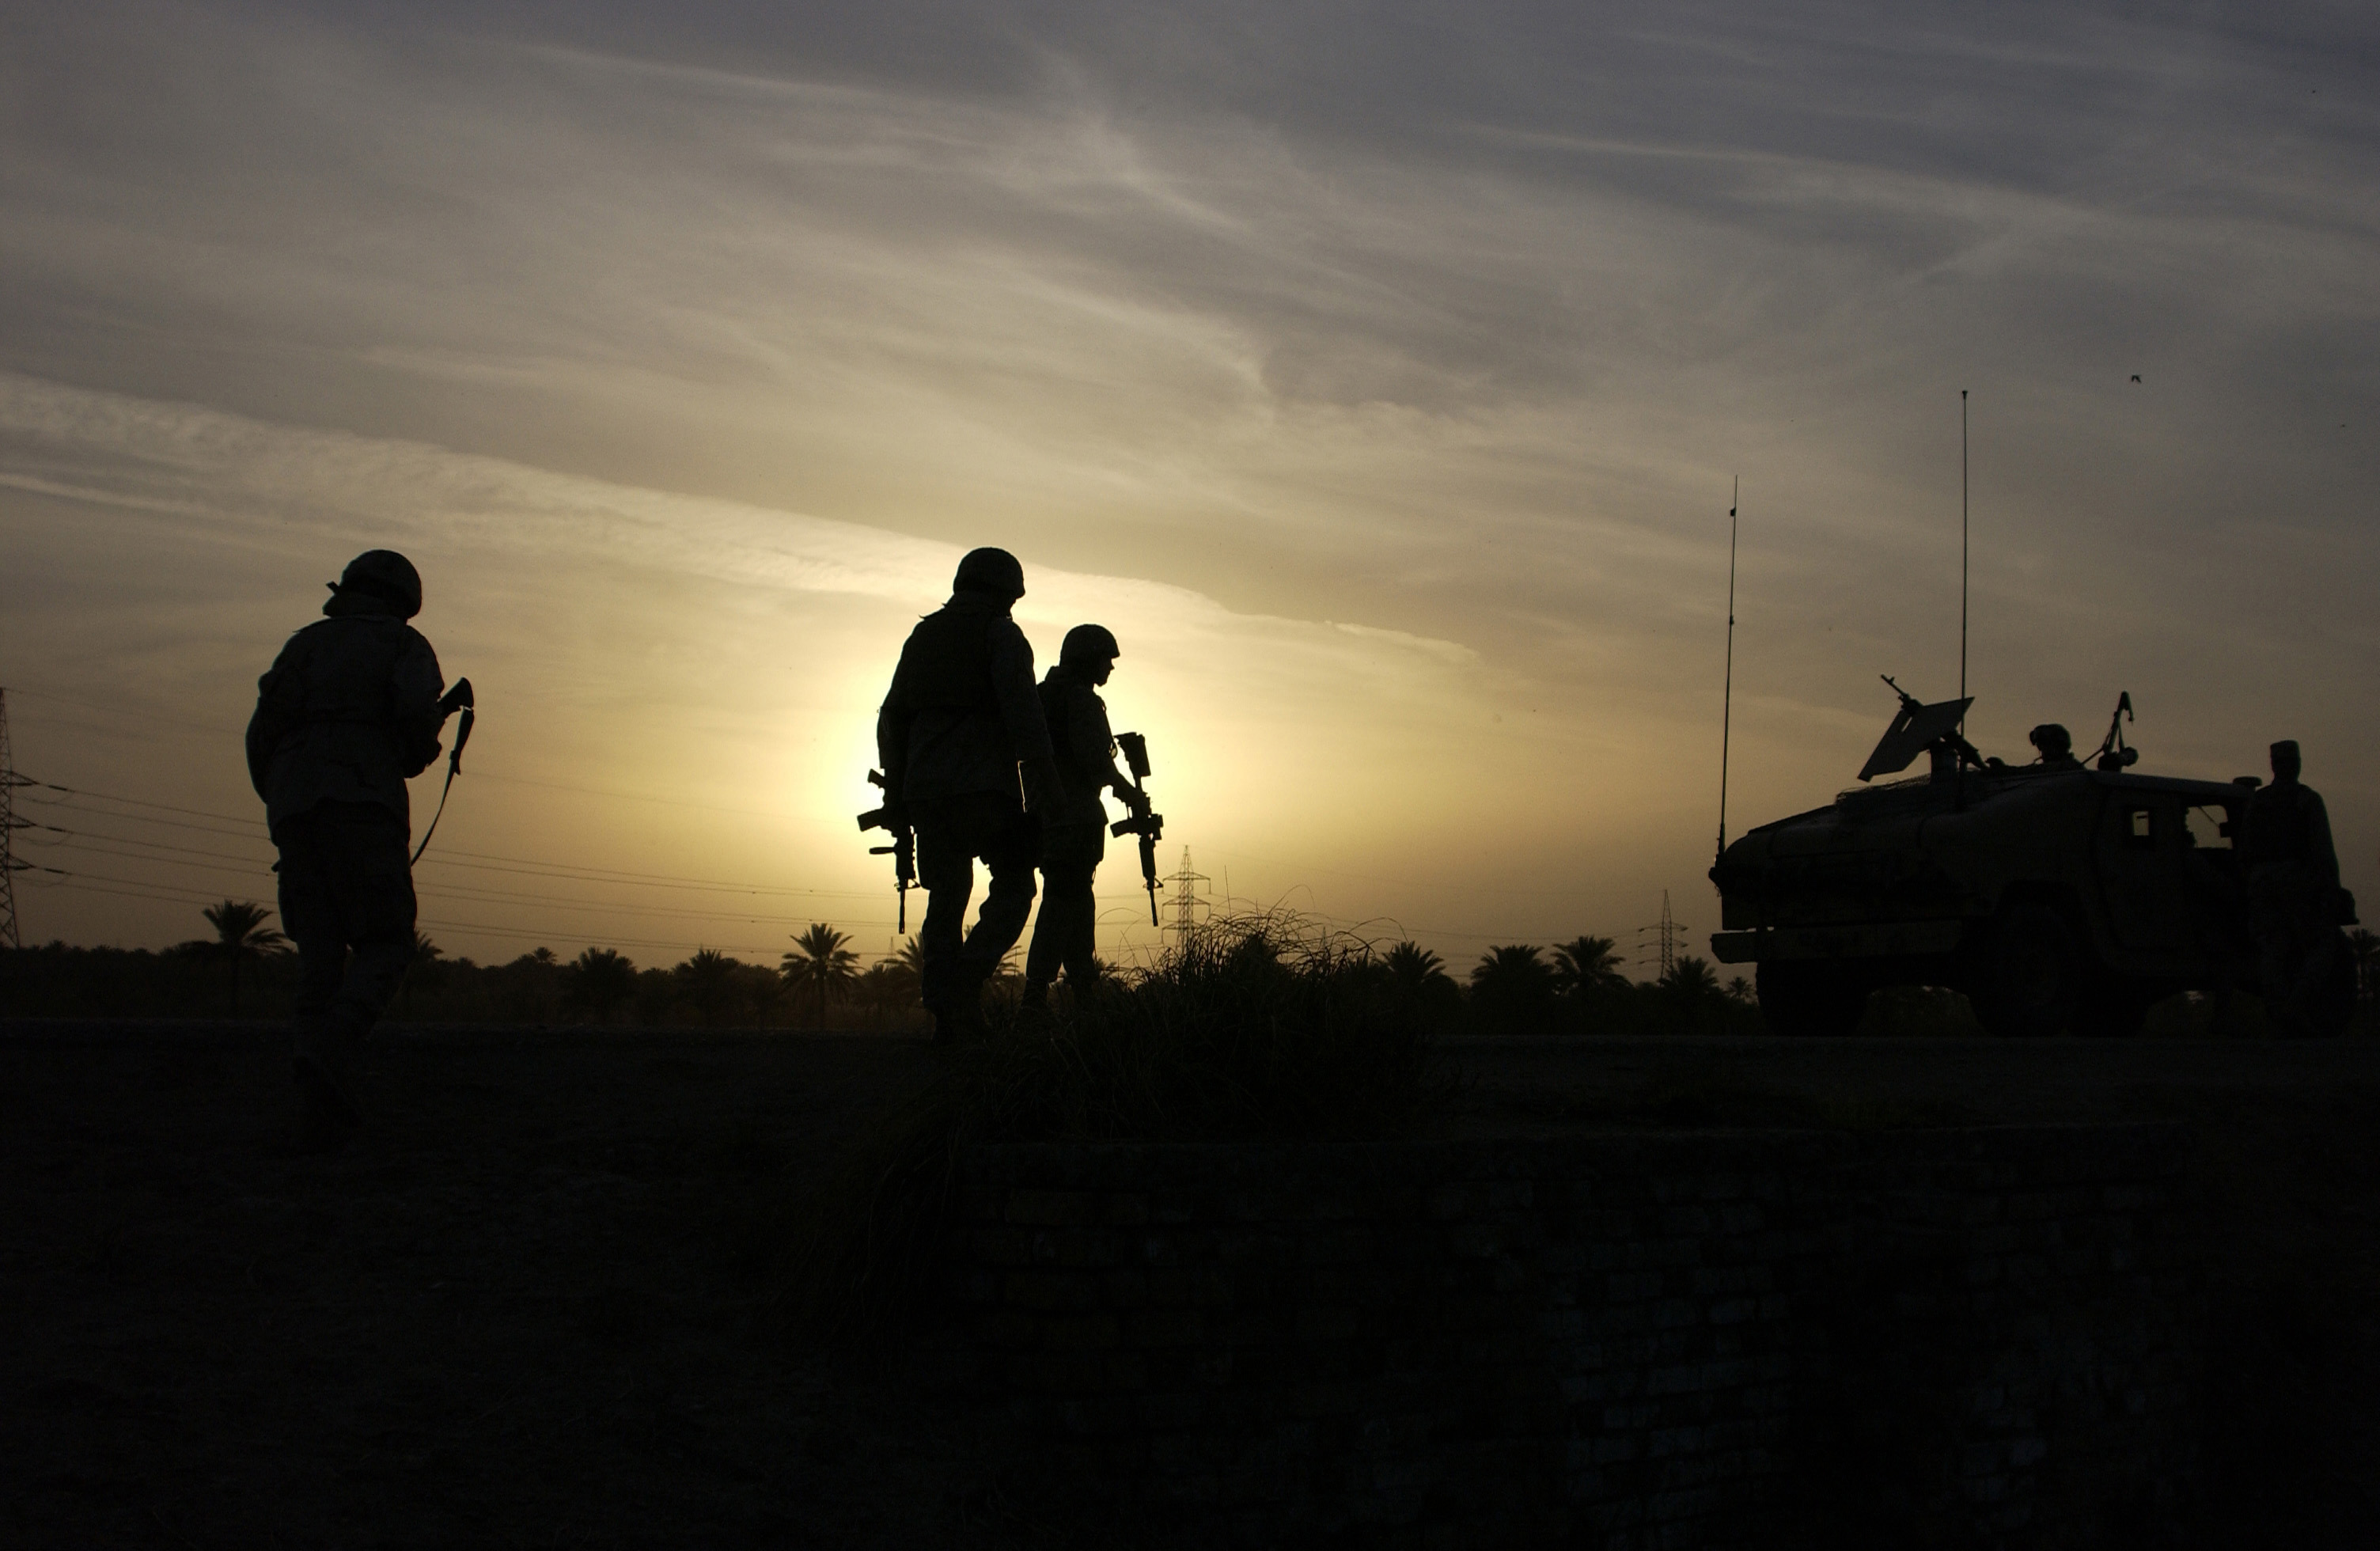 Marines with thermal rifle scopes at sundown